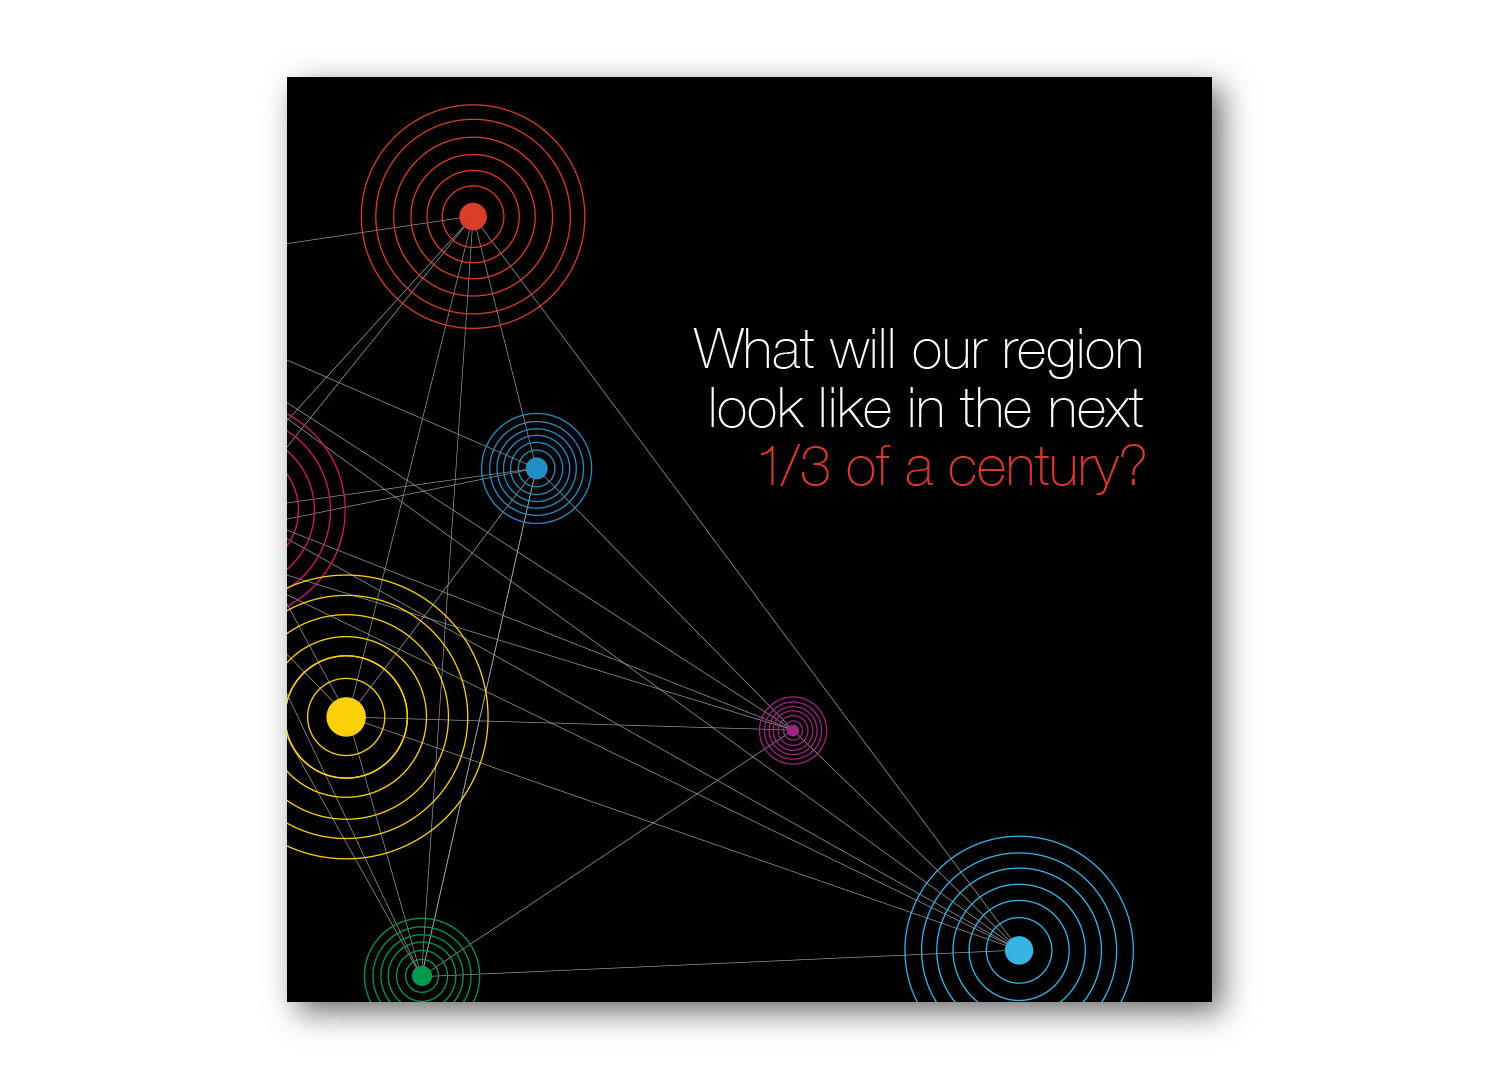 Black album cover design with text: What will our region look like in the next third of a century?